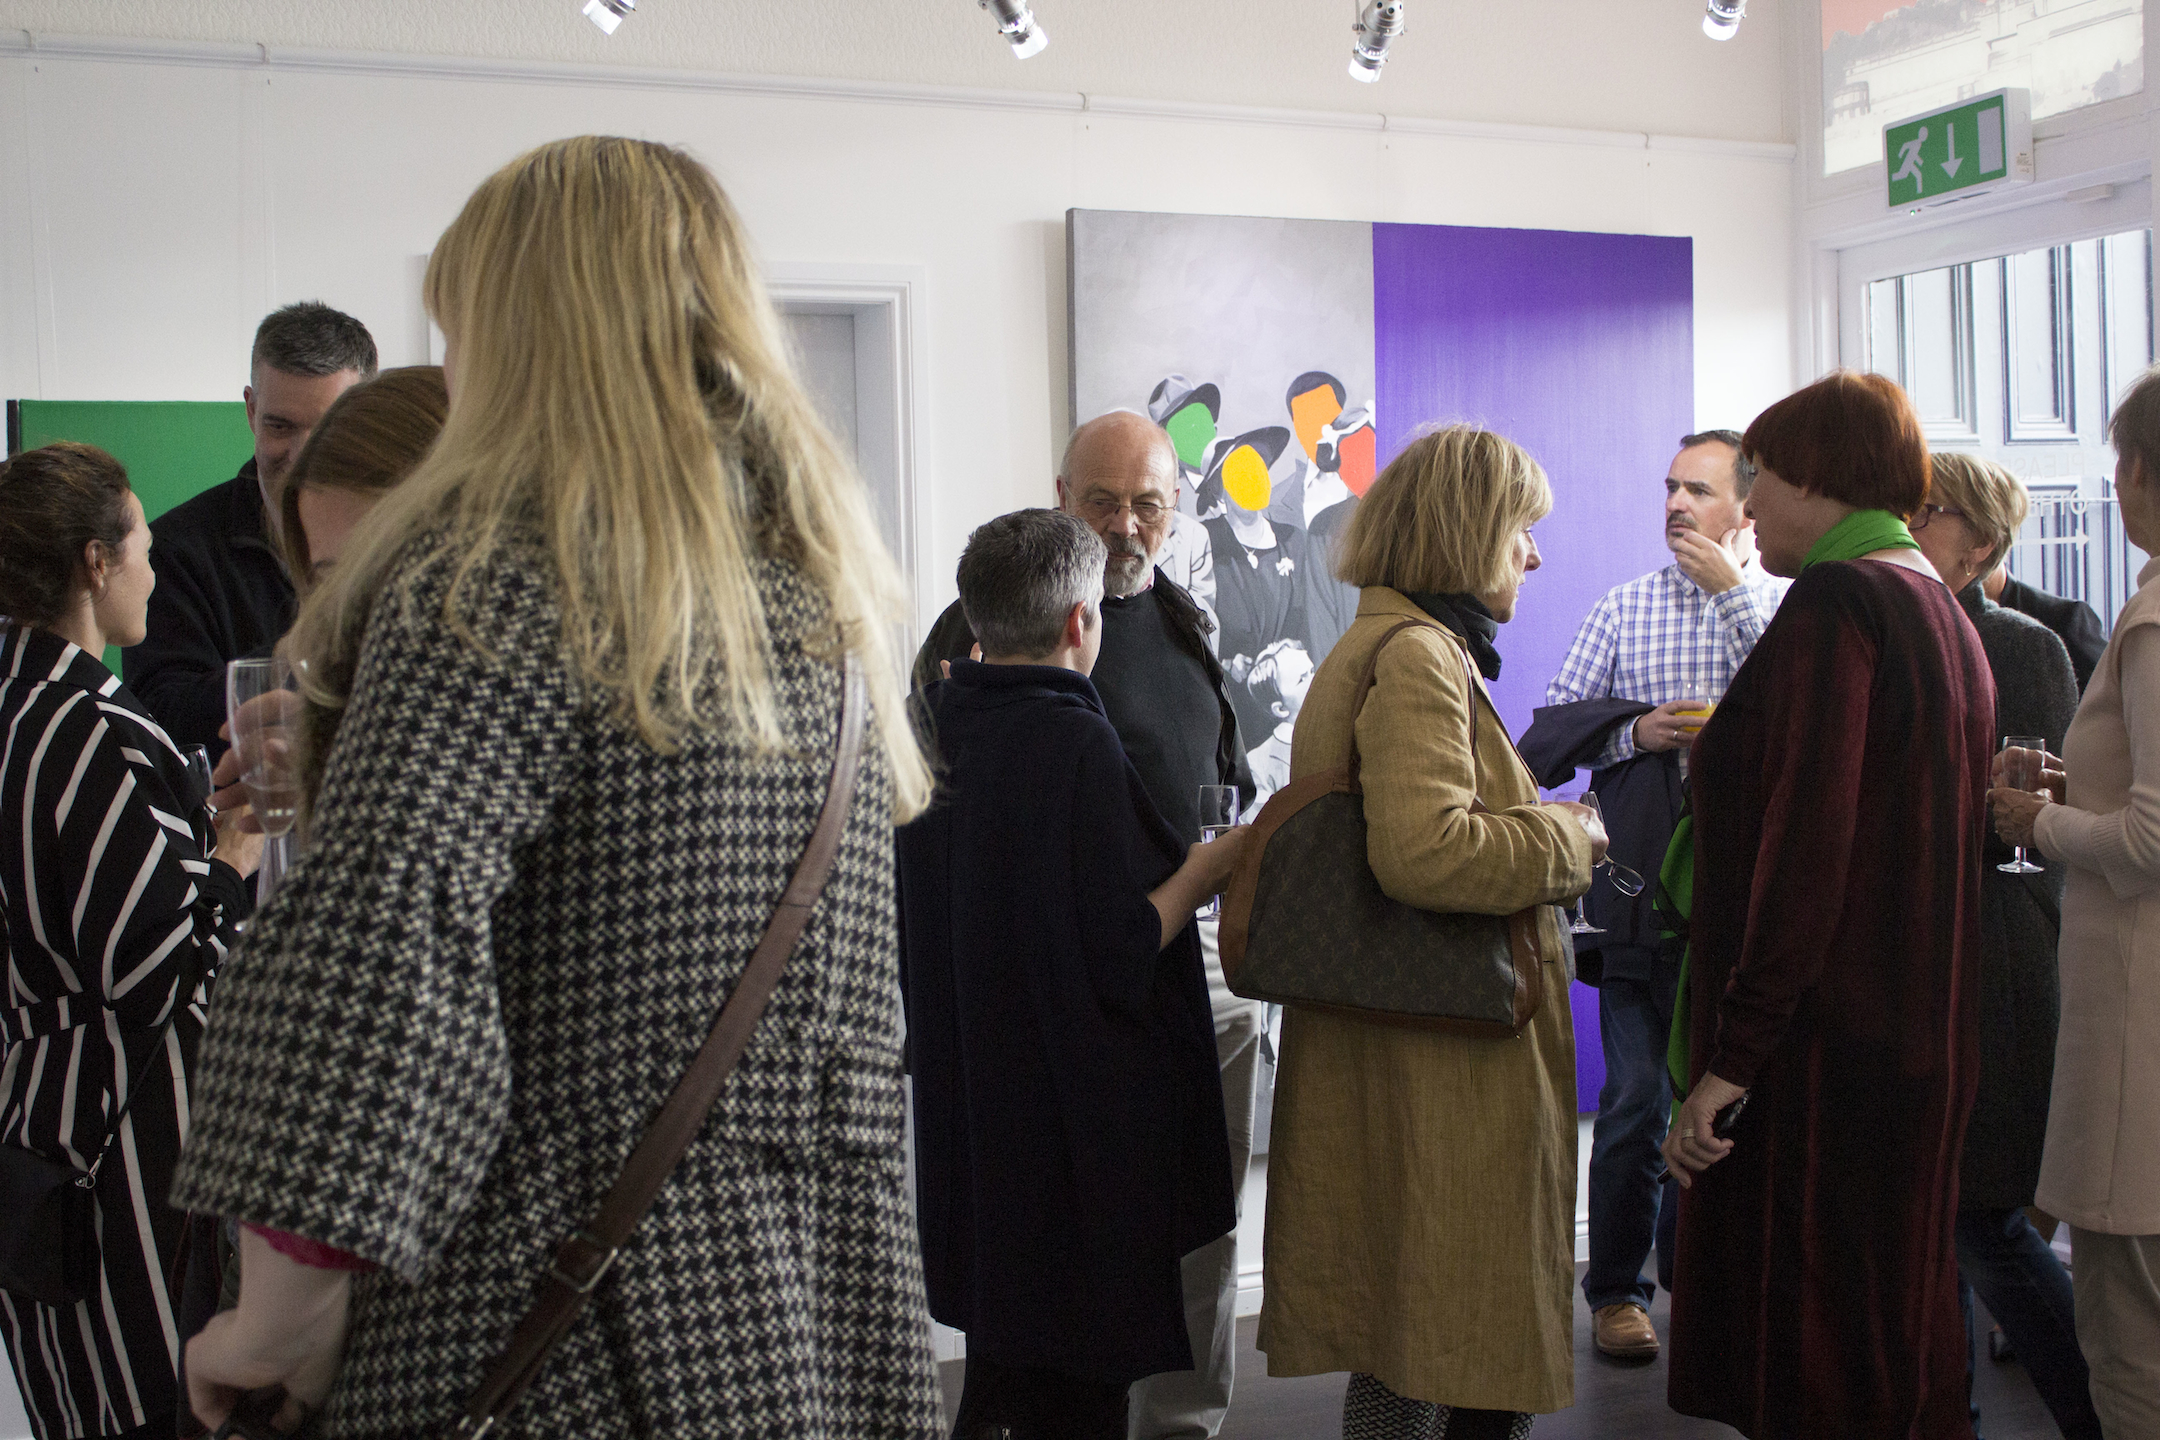 Thank you to everyone who attended Clare Andrews' exhibition opening. The event was a great success!